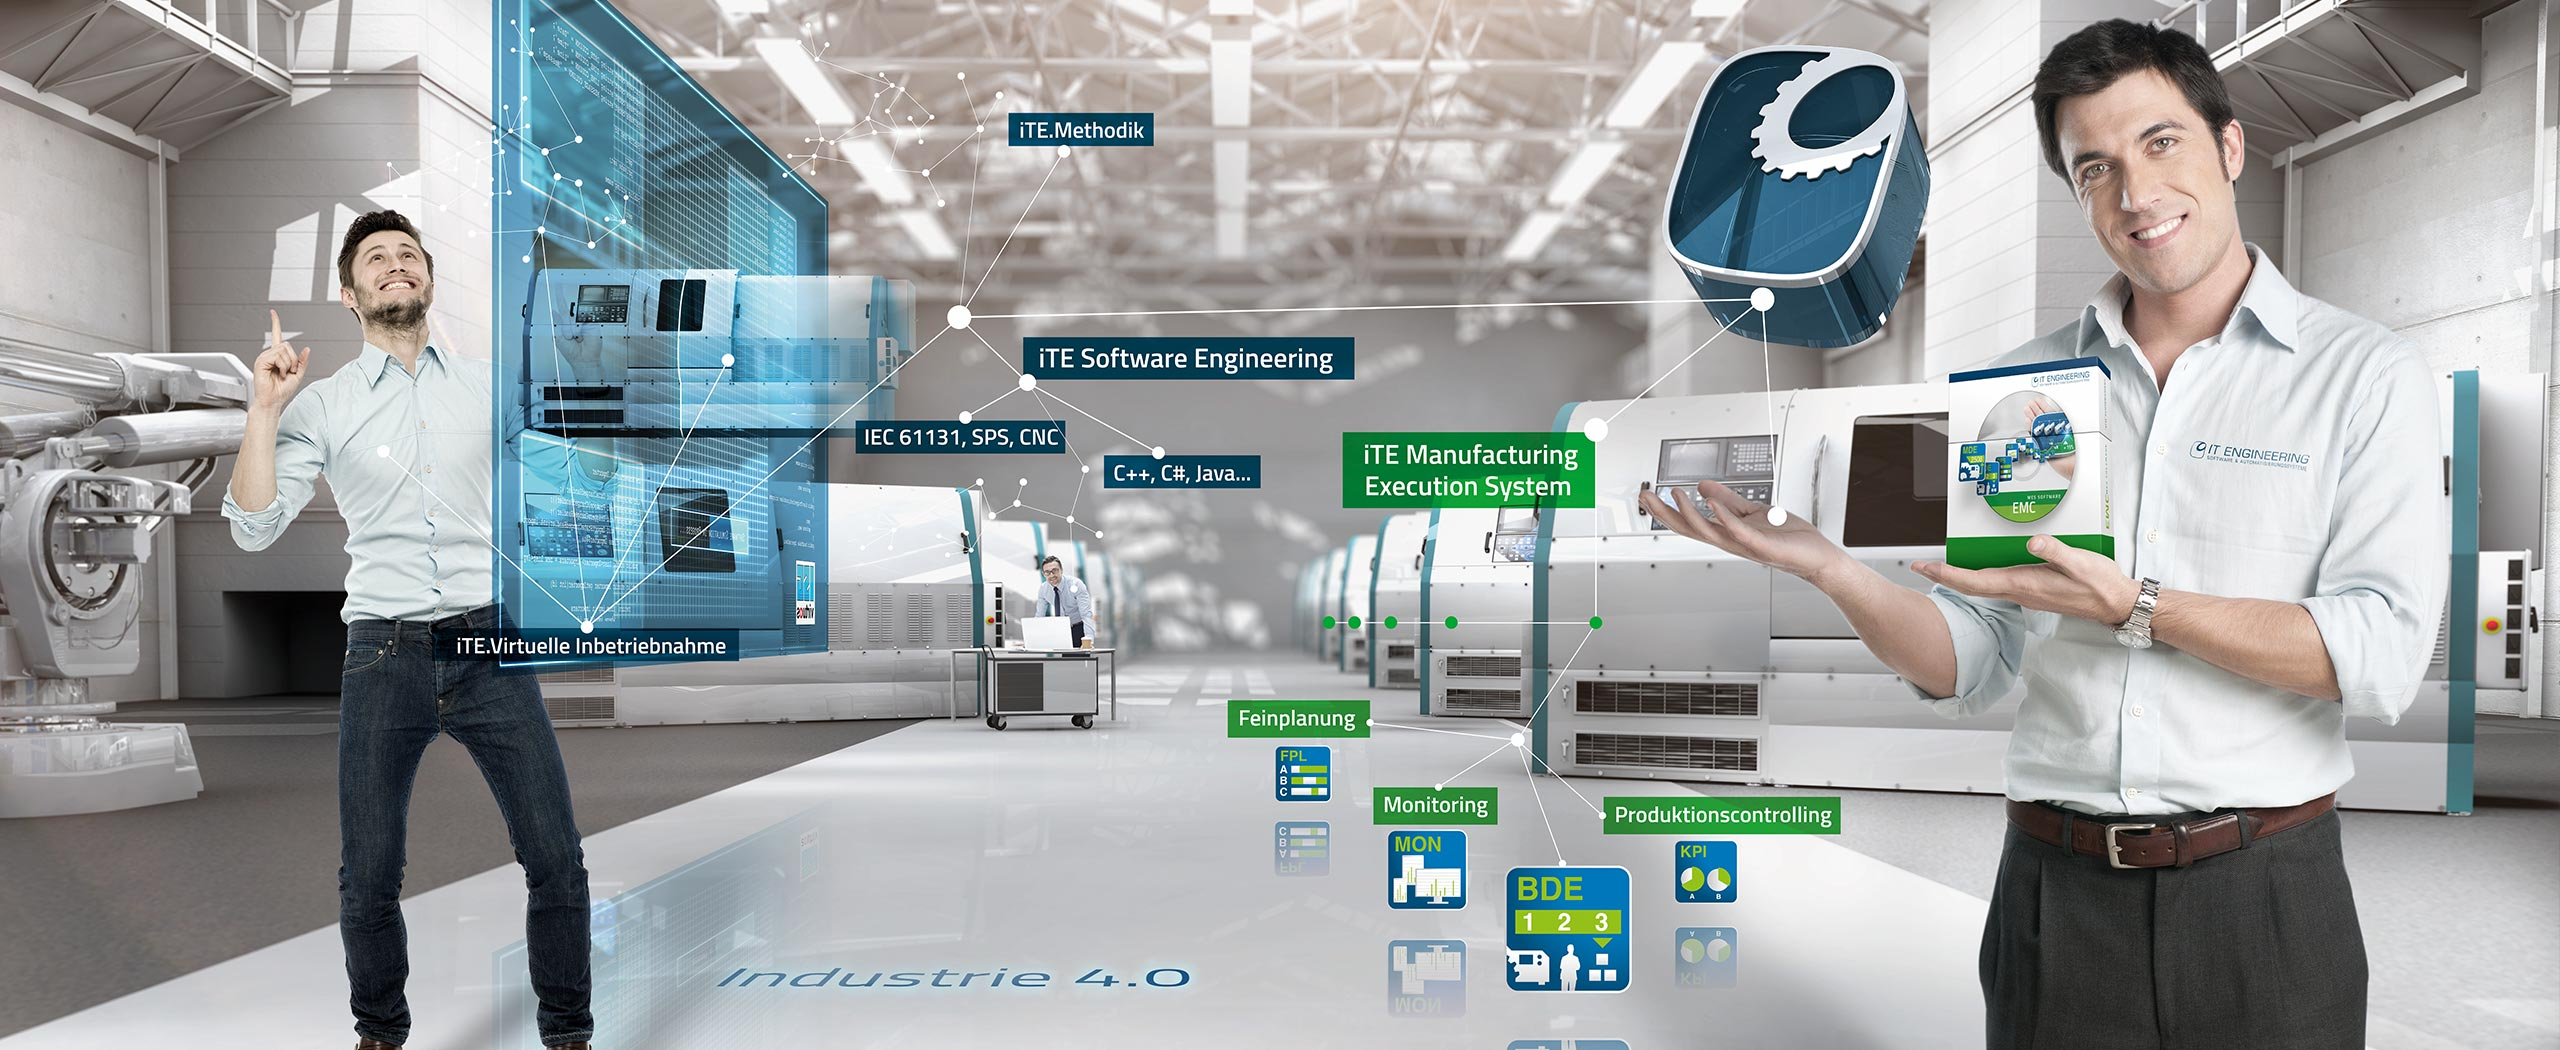 IT Engineering Software Engineering für Maschinen (SWE) und Manufacturing Executing System (MES)